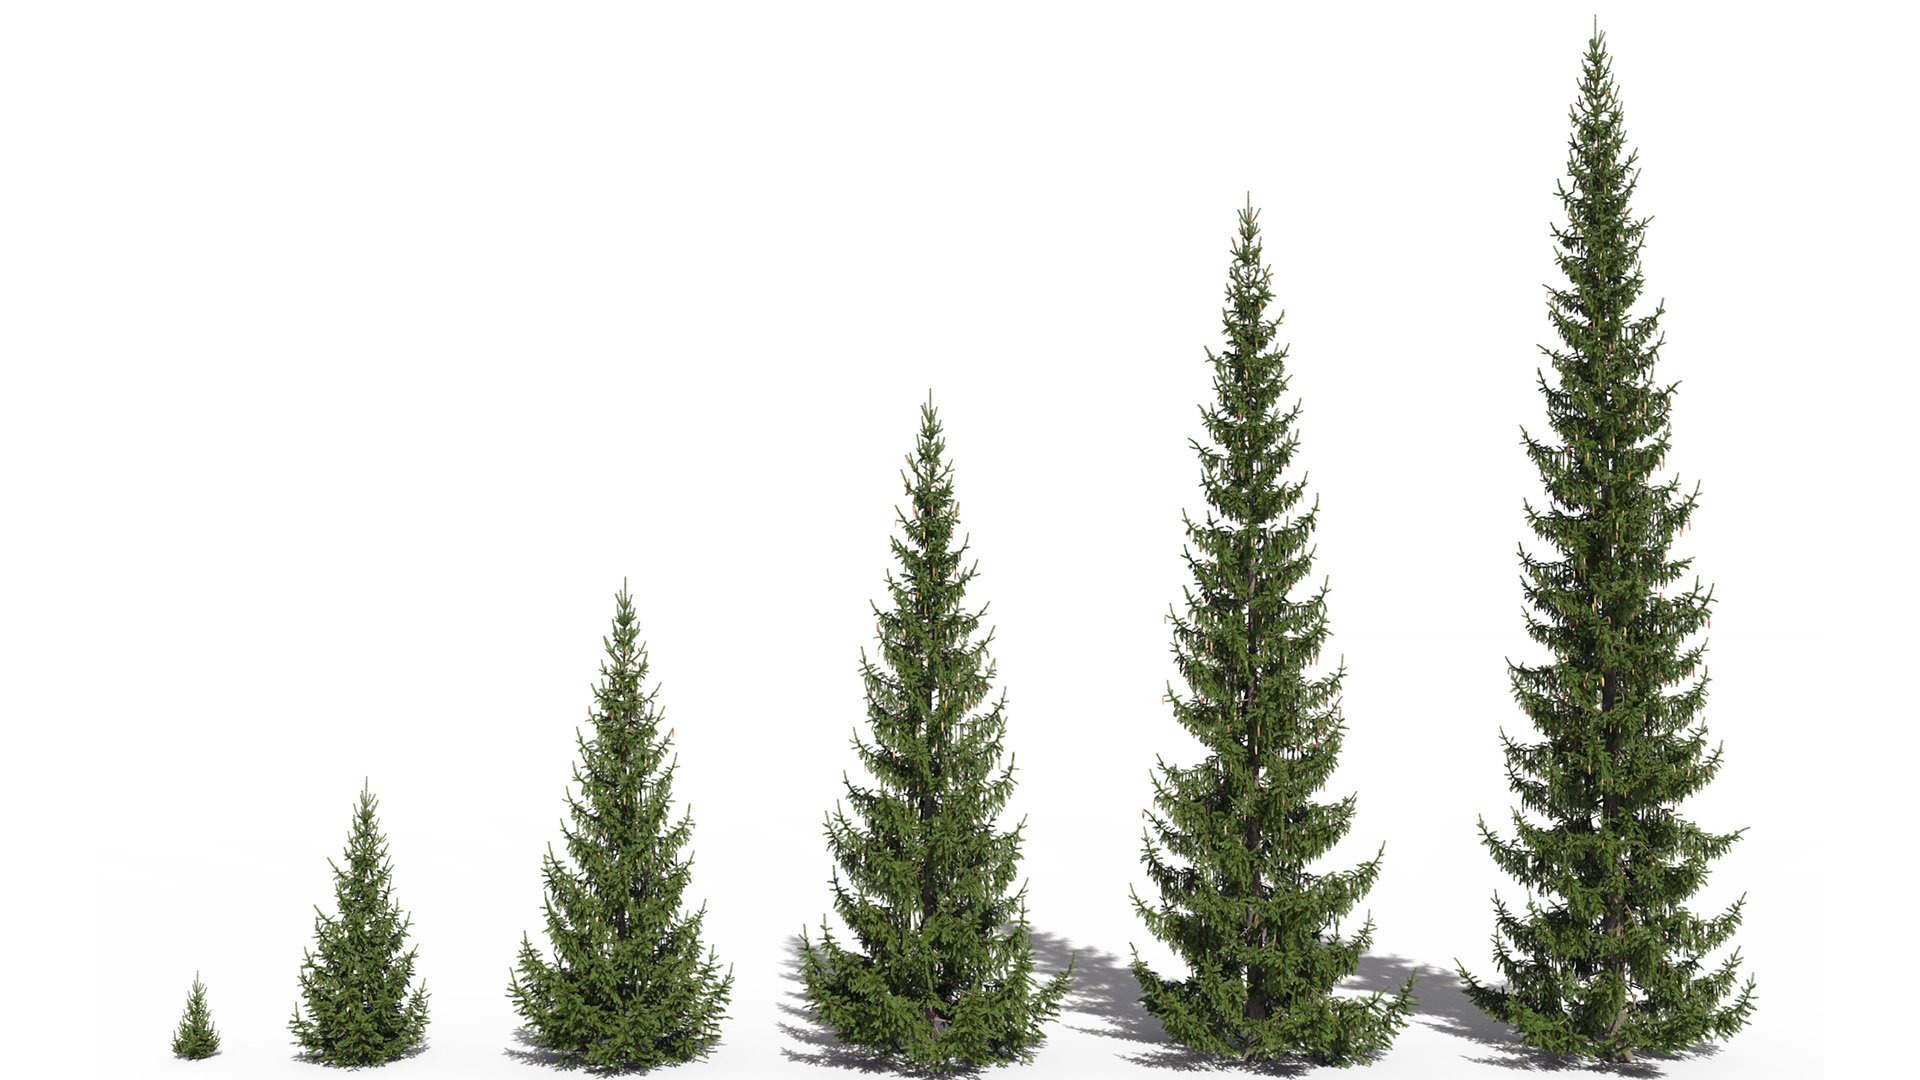 3D model of the Norway spruce Picea abies maturity variations